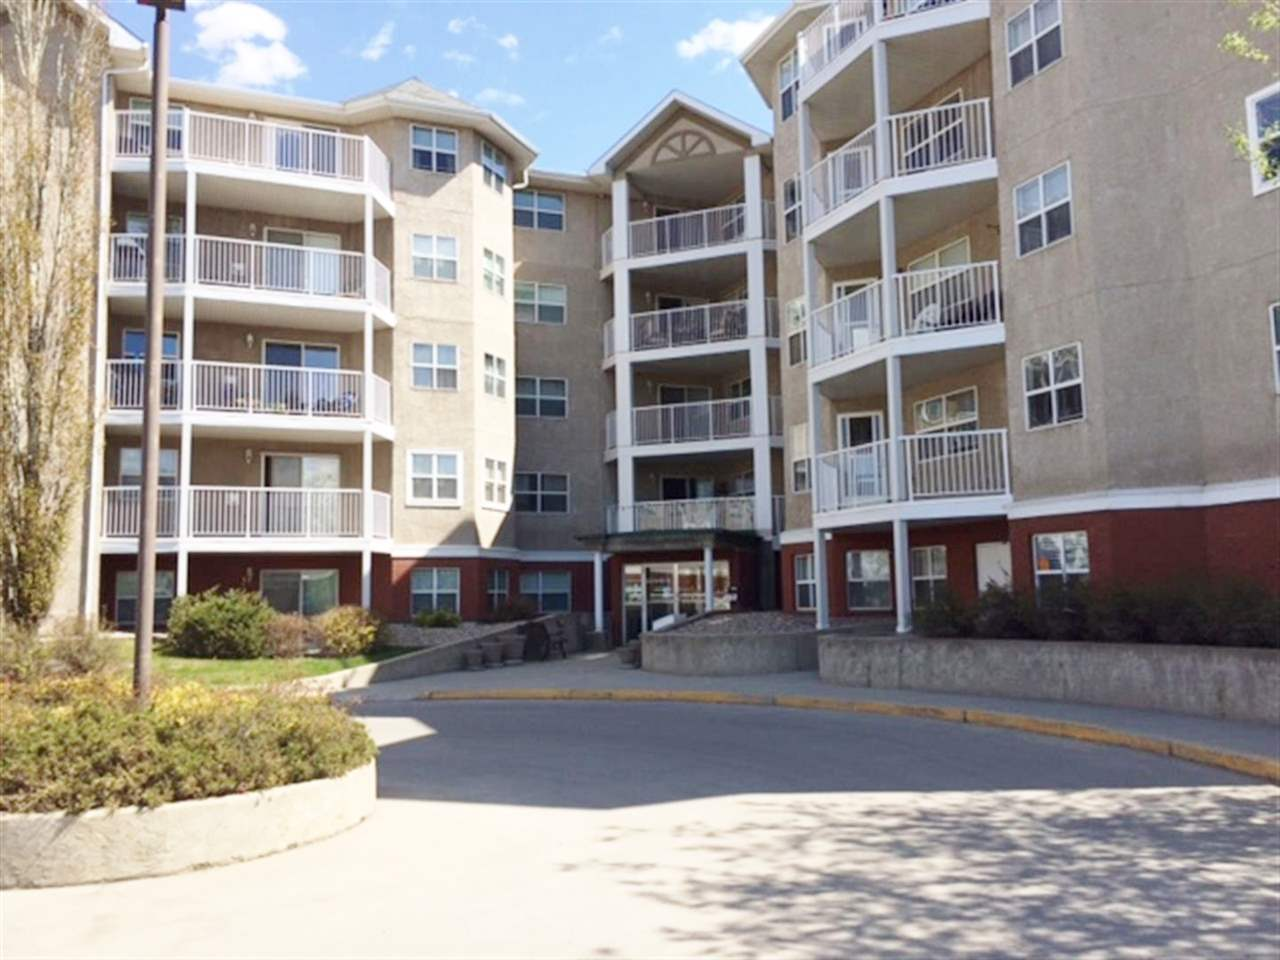 Welcome to Melrose Court (8315 - 83 Street) located directly across from Bonnie Doon Mall. This exceptionally well-maintained condo is 1,022 sq. ft. of elegant living space with a SE view from this main floor unit. 2 bedrooms, with walk through closet, 2 baths with 2015 walk-in-bath-tub/Jacuzzi tub. Large living room with a corner gas fireplace. Very functional kitchen with plenty of room for a dining room table. 3 ceiling fans will keep you cool during those hot summer nights. 5 appliances included - stacked washer/dryer. Recent improvements include: balconies, railings, windows, plumbing and shingles. Heated underground parking with a storage locker. Condo fees include heat and water. Melrose Court includes a party/social room with kitchen and fireplace, guest suite, car wash and visitor parking. Adult 50+ building, pet friendly and future LRT location. Close to all amenities including Whyte Avenue, shopping, restaurants, U of A and all the south side of Edmonton has to offer.